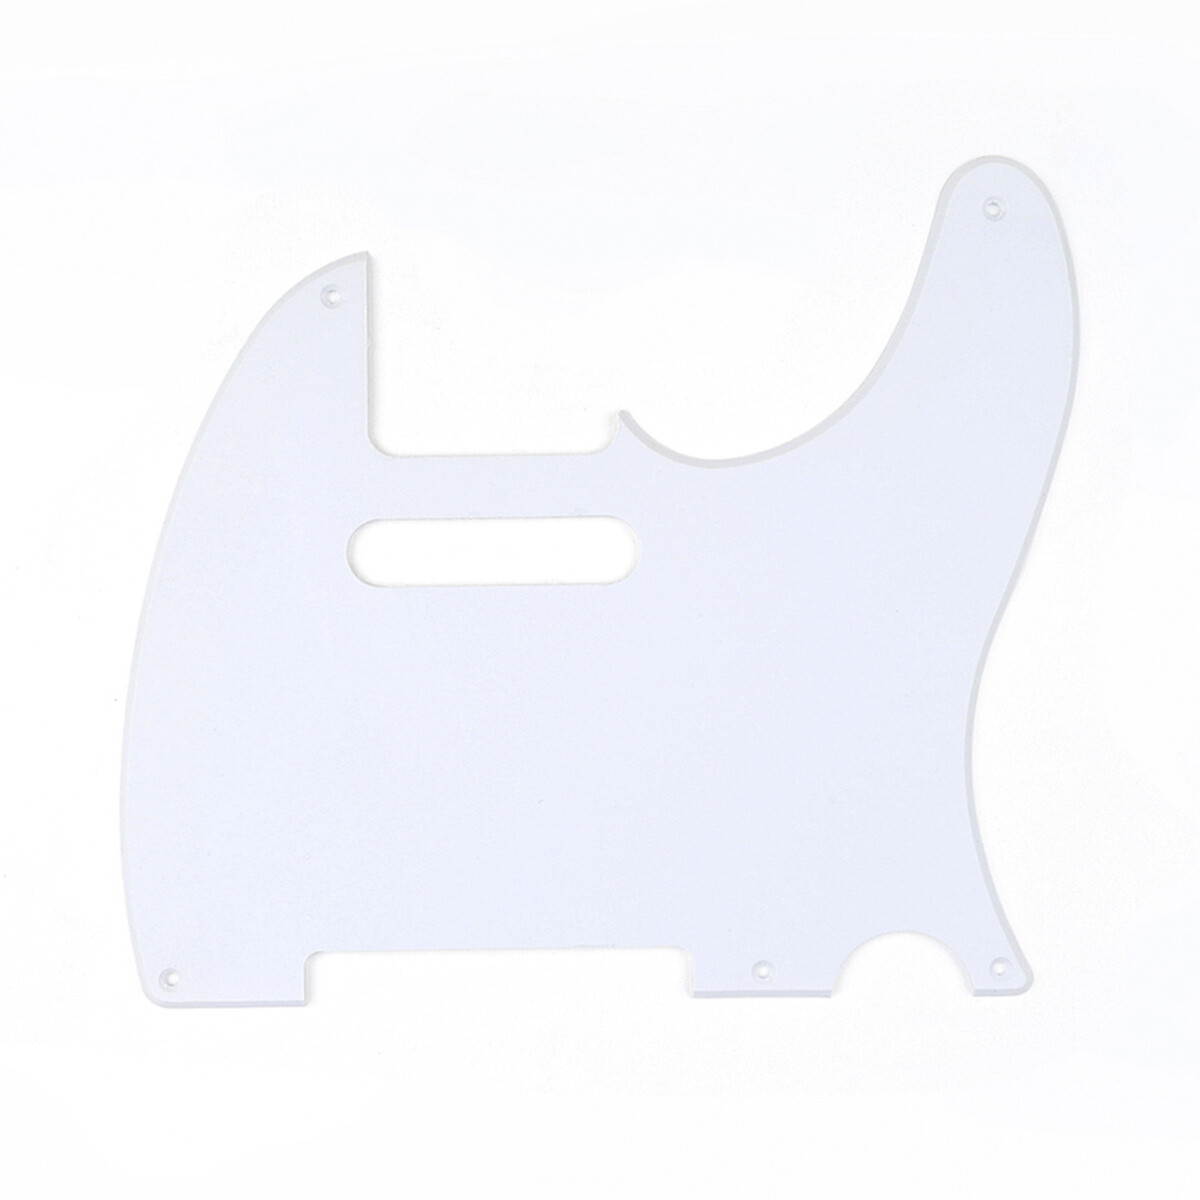 Brio 5 Hole Vintage Tele® Pickguard USA/Mexican Gloss White 1 Ply